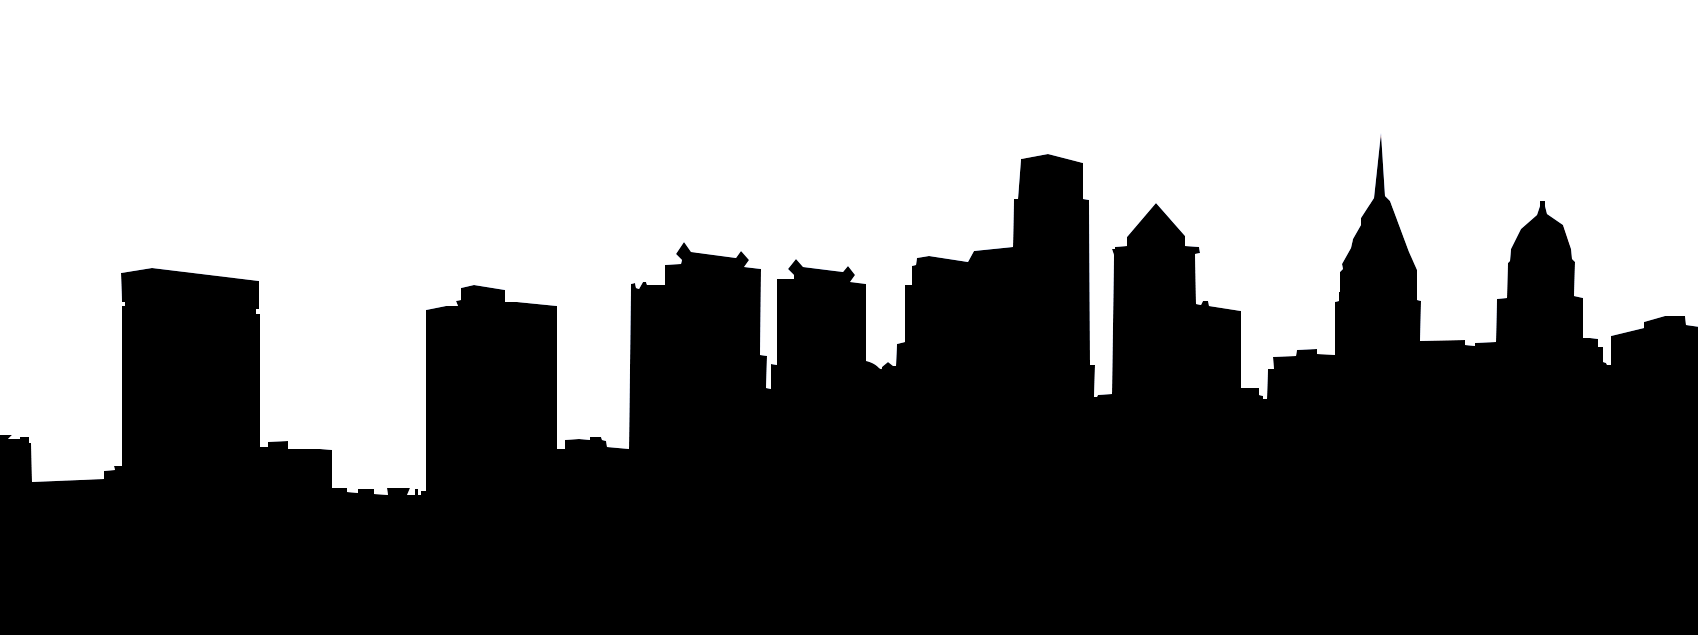 1698x635 Philly Ipsum! Things For Us Skyline Silhouette, Eagle Face